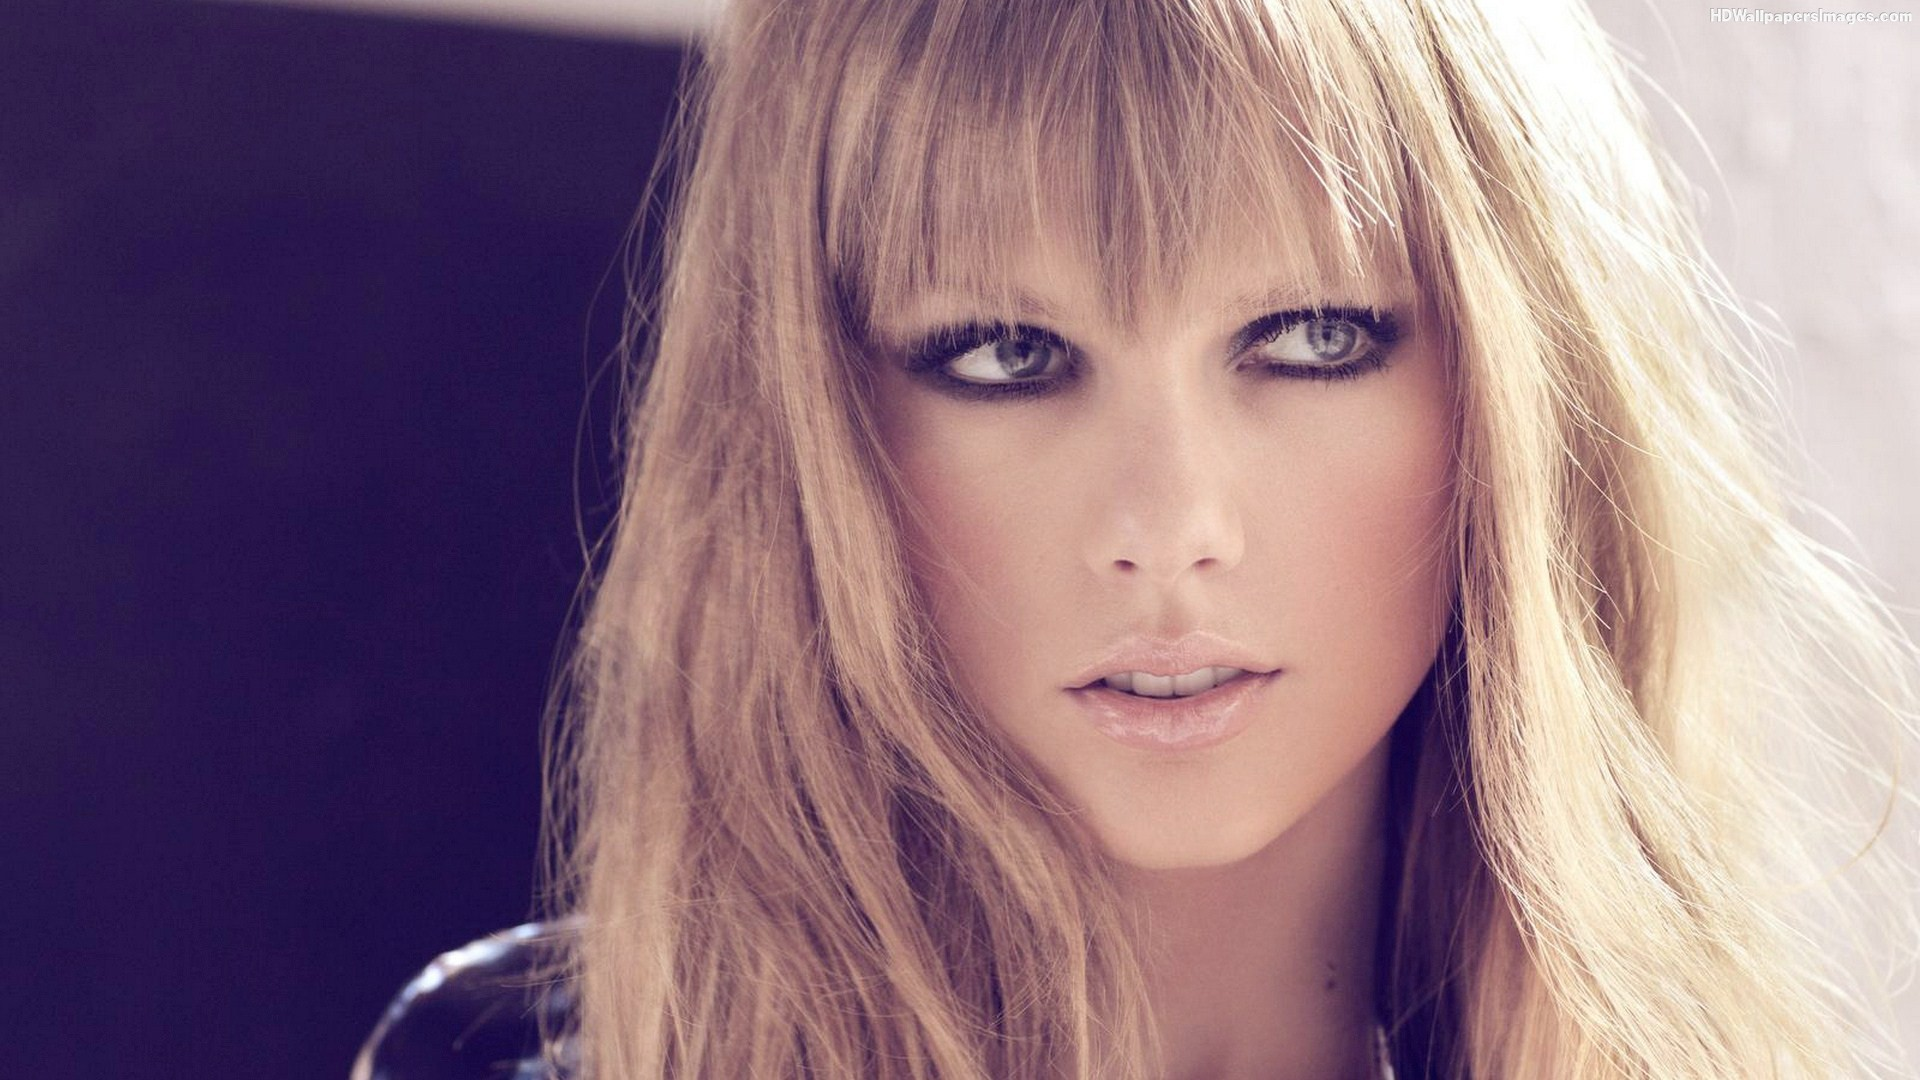 Taylor Swift Wallpapers 1920x1080